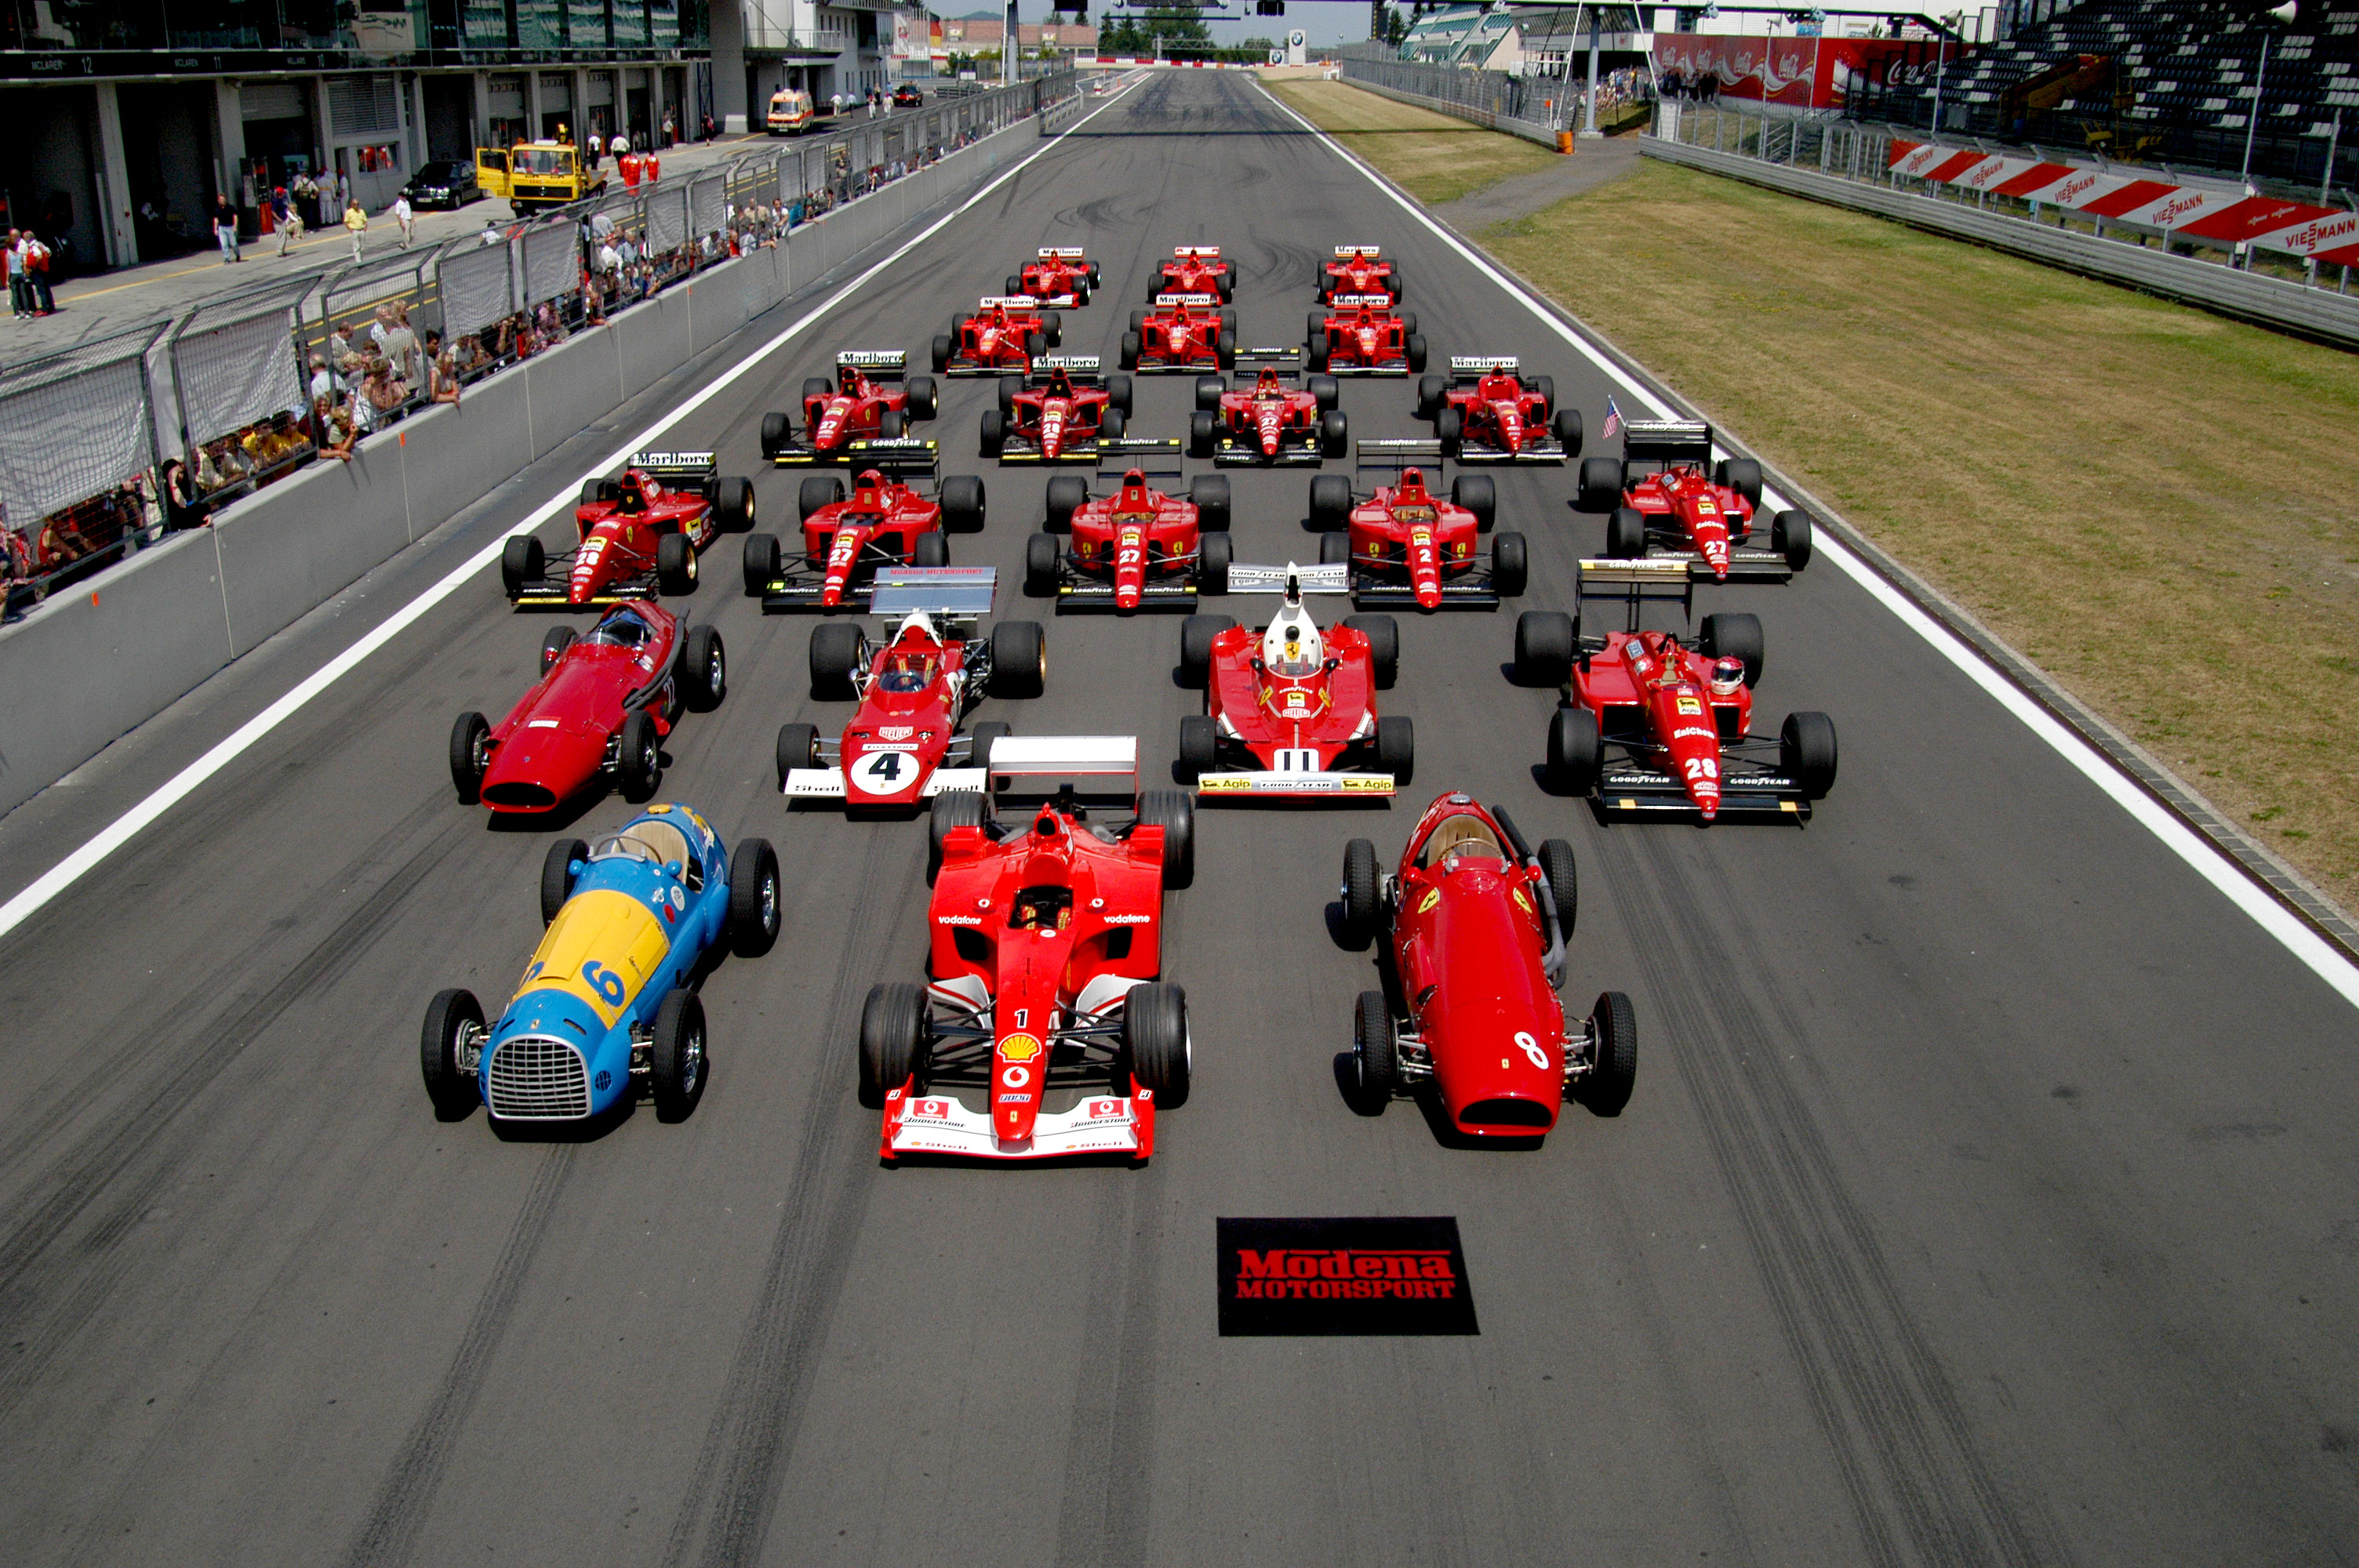 Ferrari_Formula_1_lineup_at_the_Nürburgring